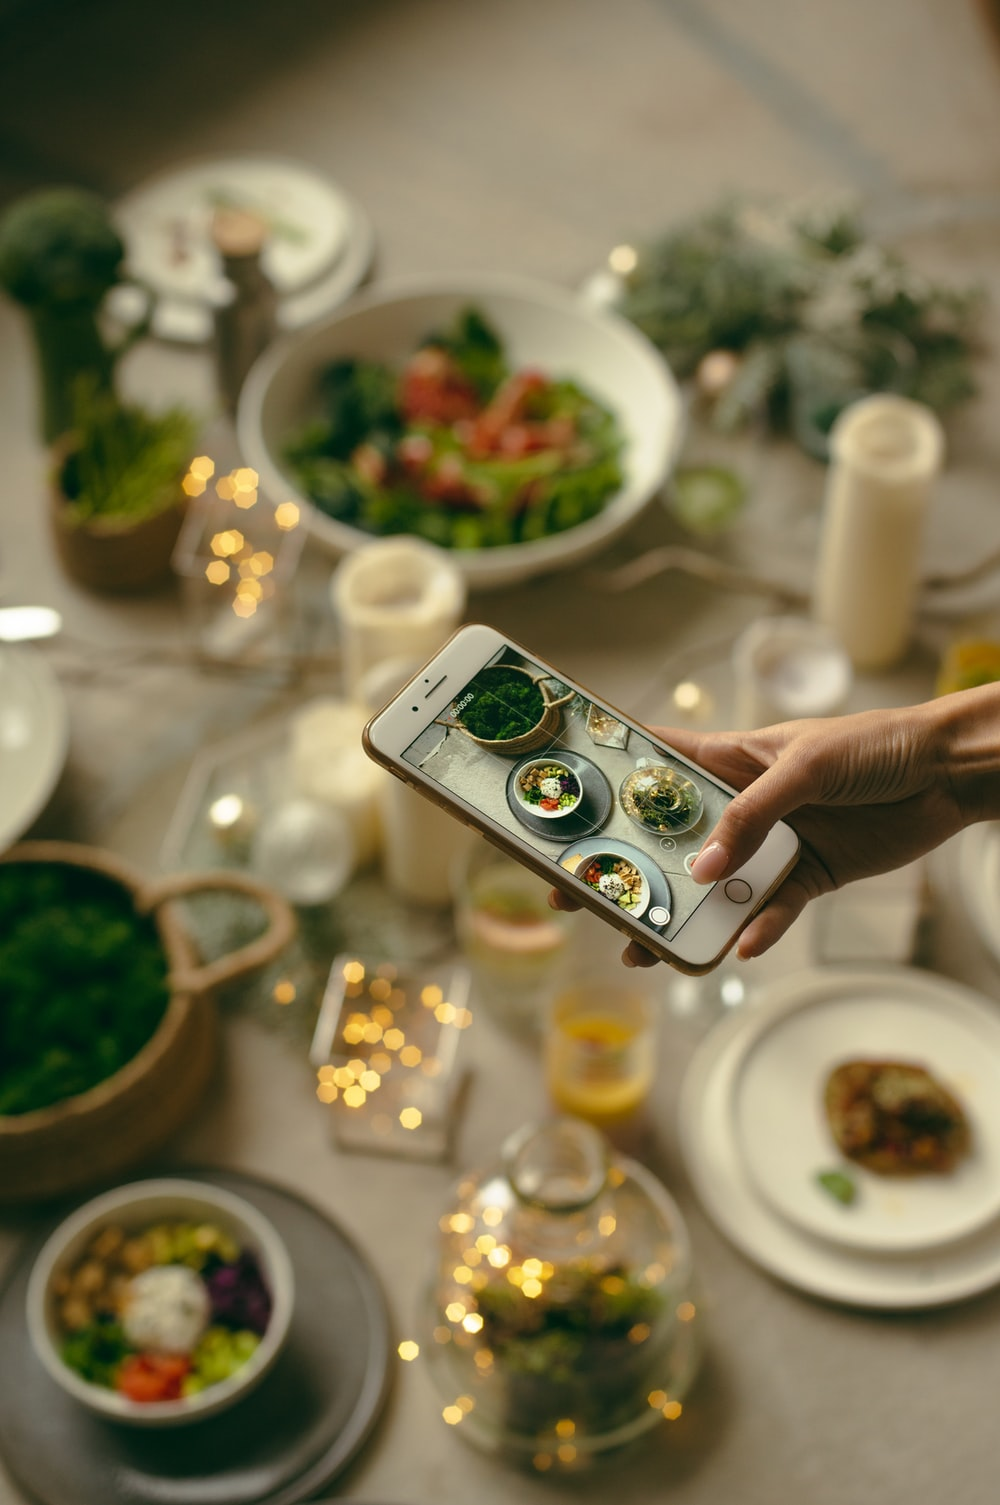 person taking picture of variety of food using phone